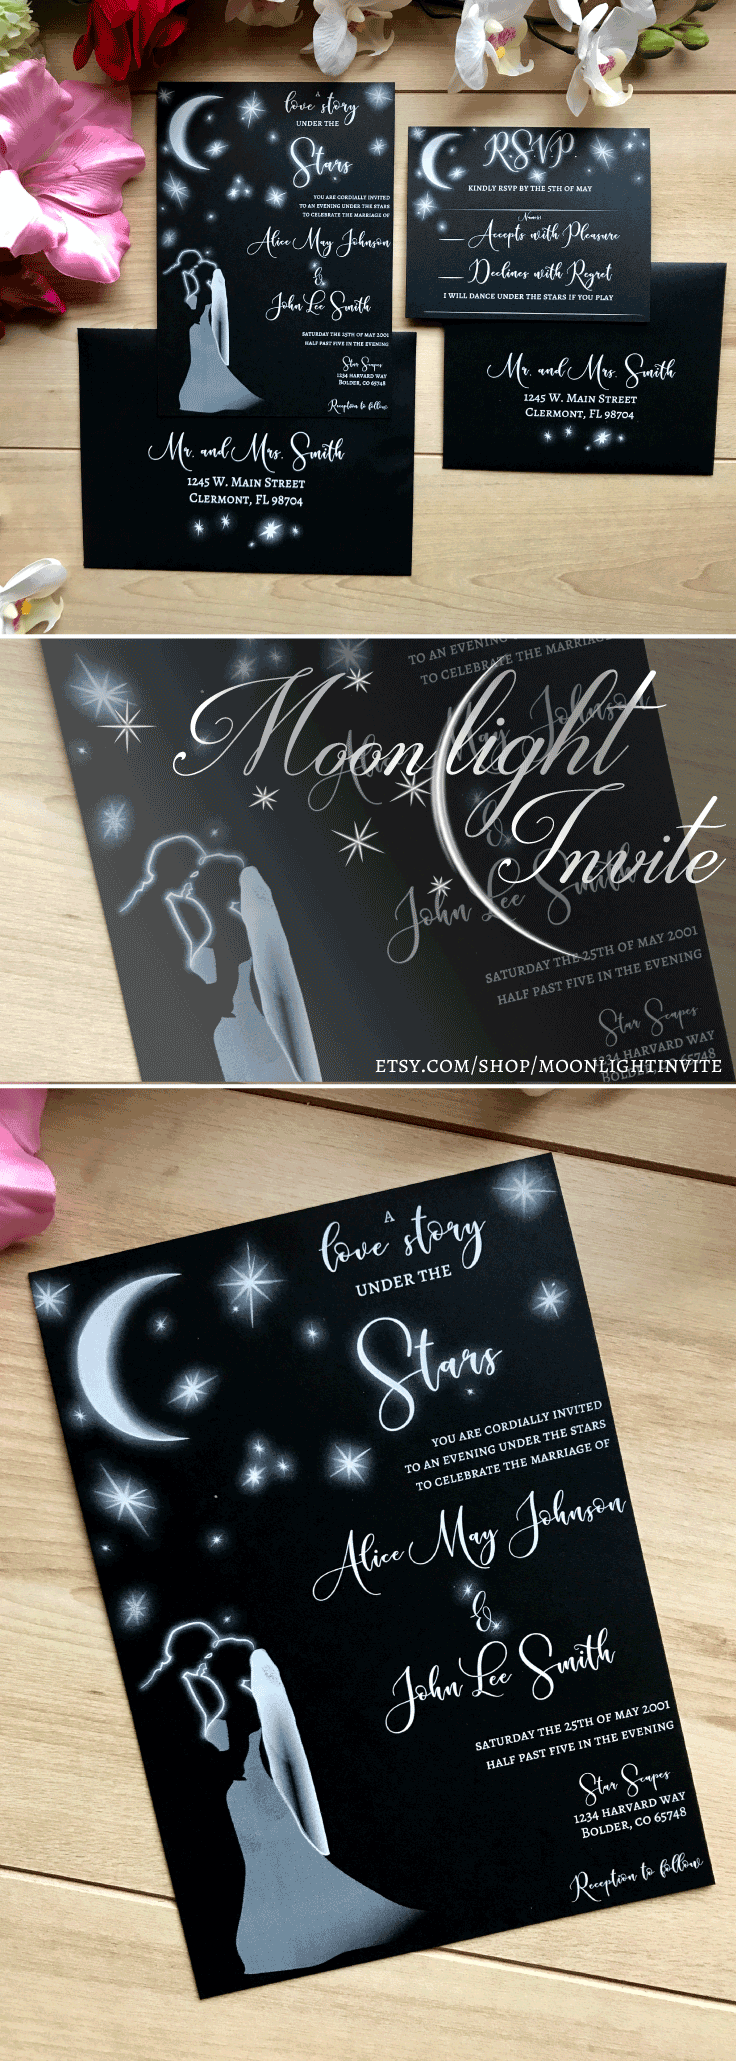 Starry Night Wedding Invitation Bride And Groom Kissing Under The Stars And  Moon Love Story